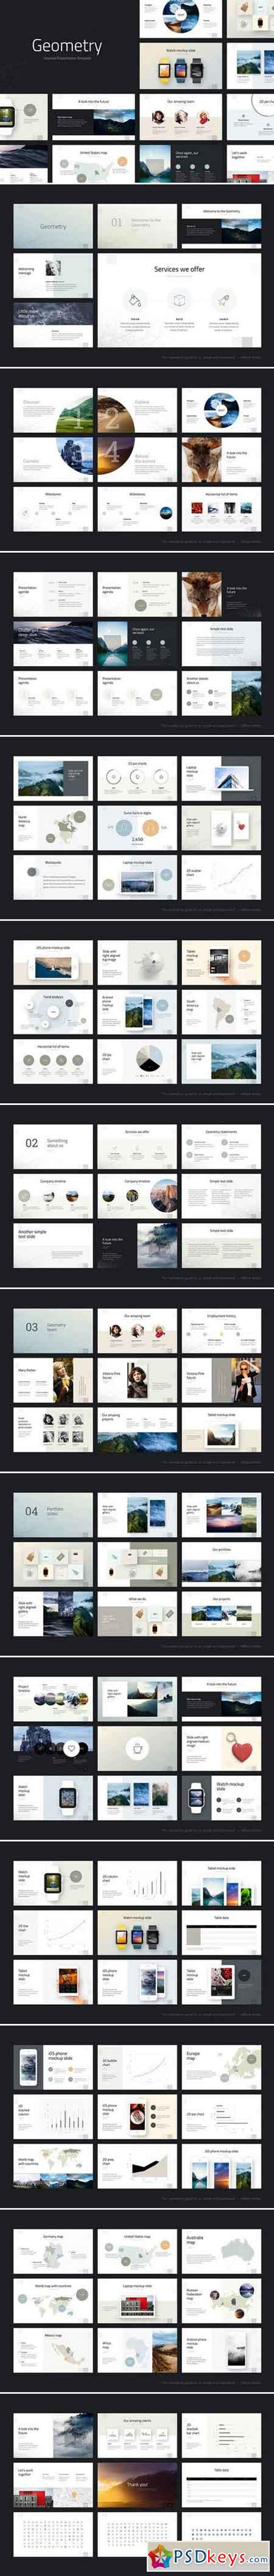 Geometry Keynote Template 961425